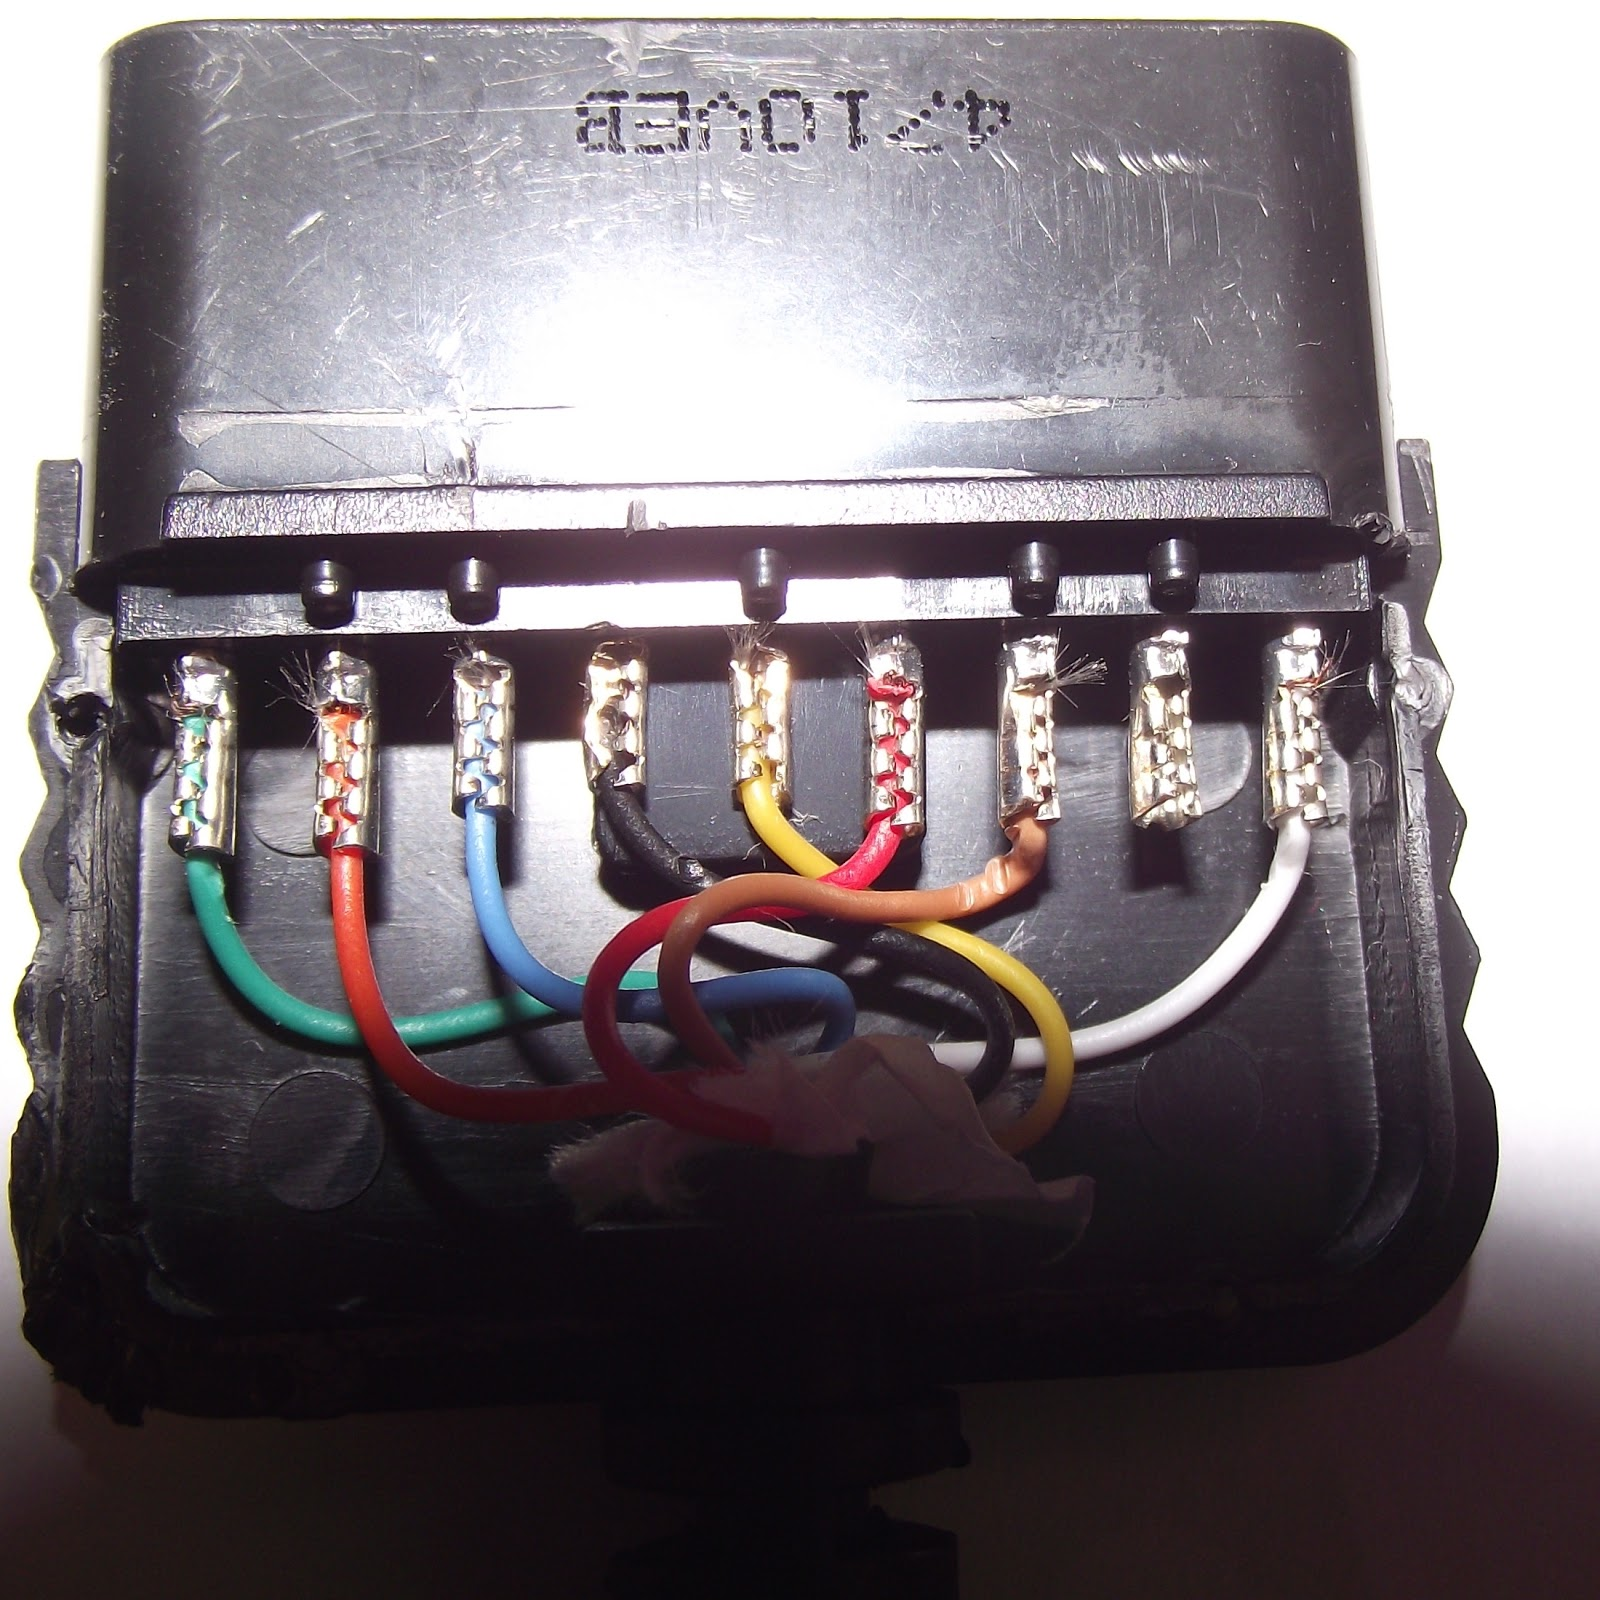 Amusing Playstation 2 Wiring Diagram Contemporary - Best Image ...